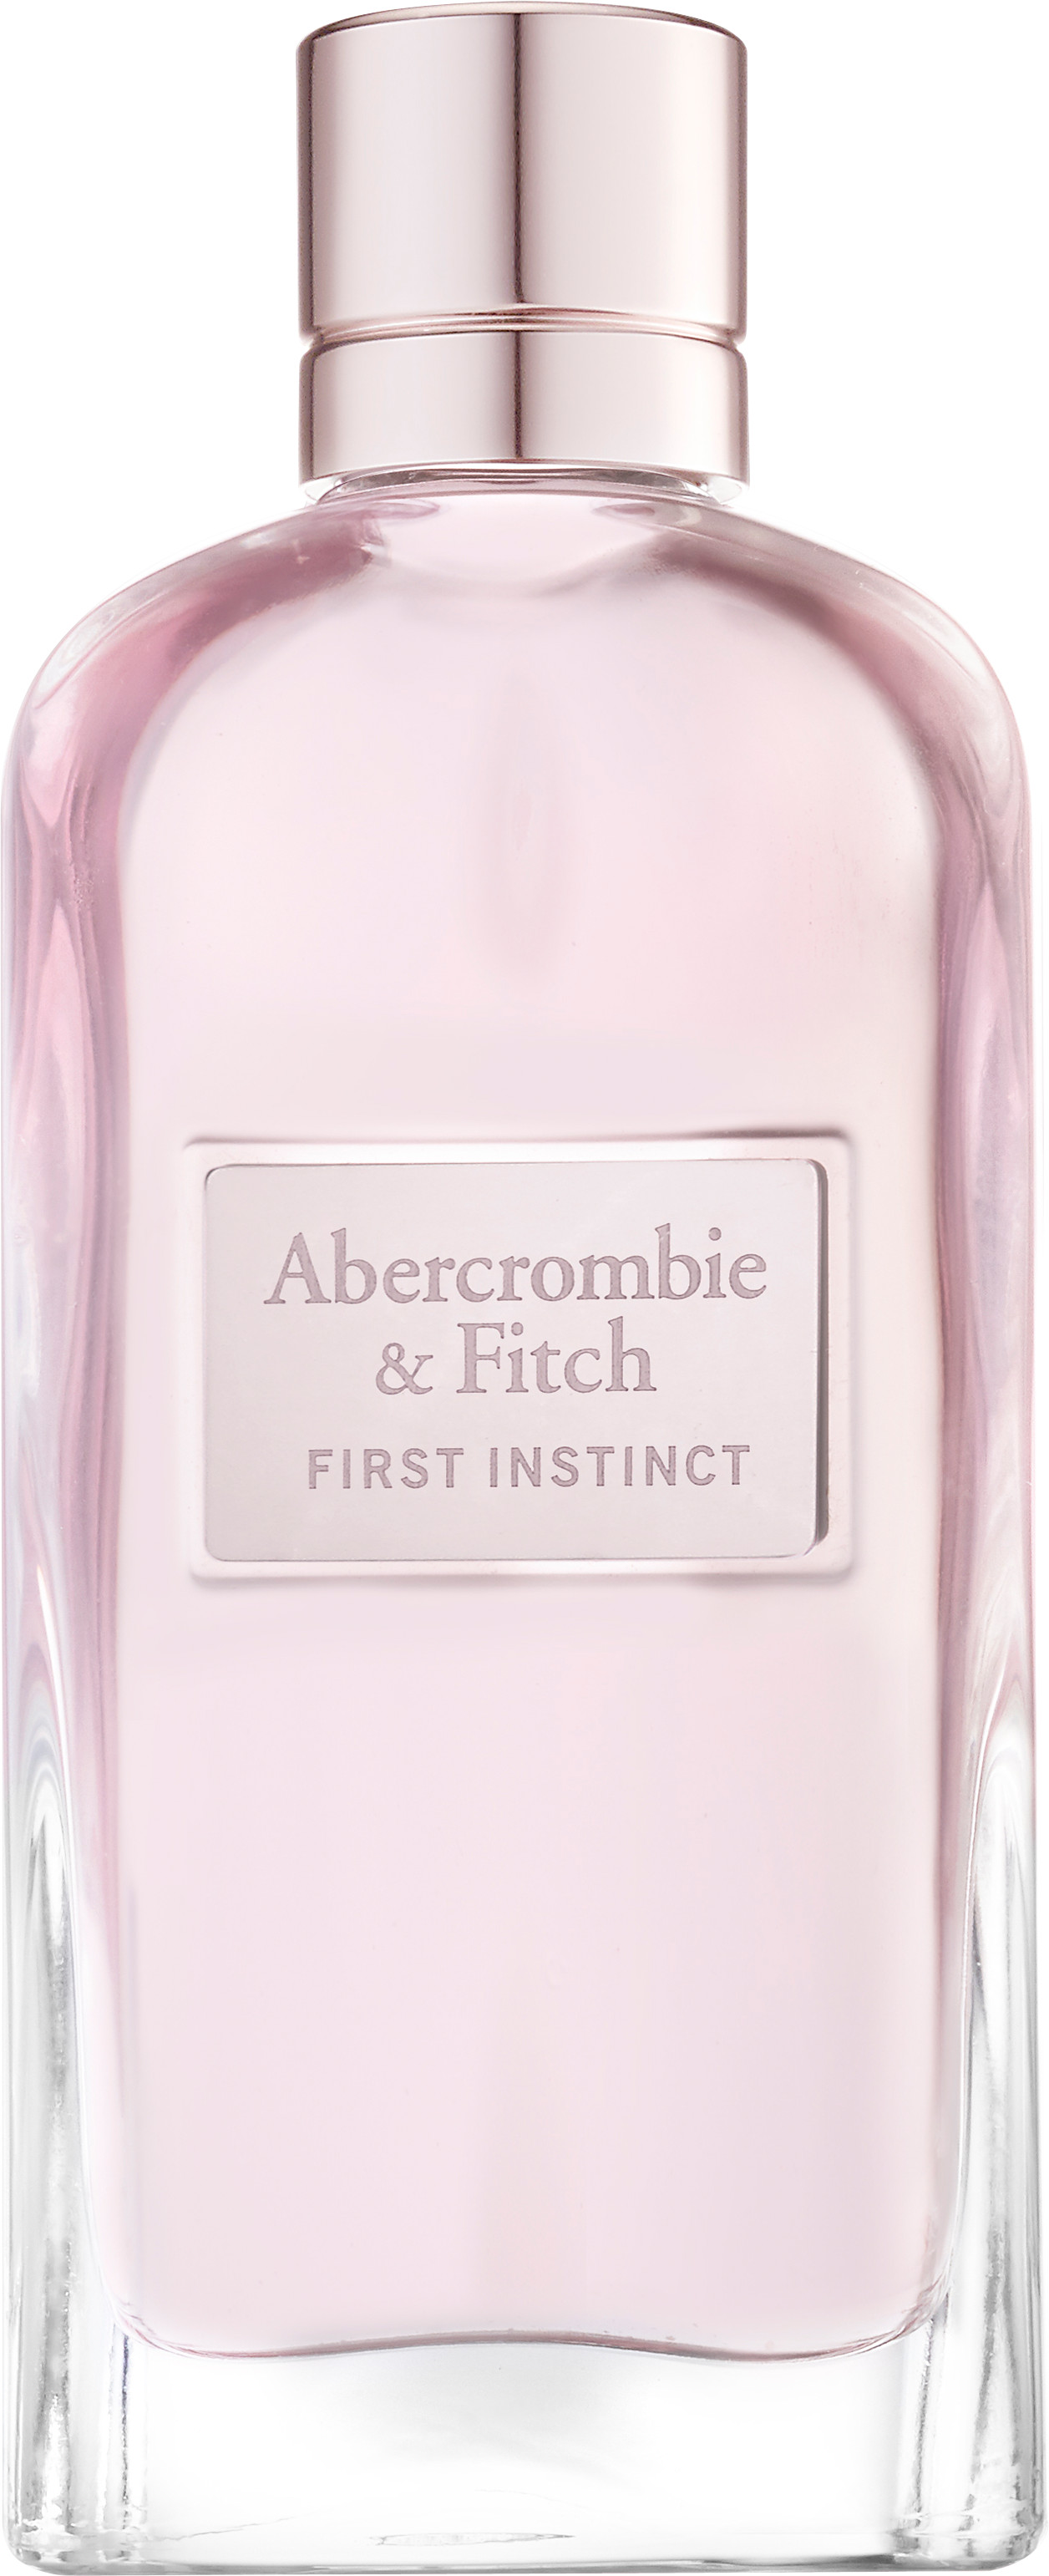 Fragrance Abercrombie & Fitch First Instinct Eau de Parfum